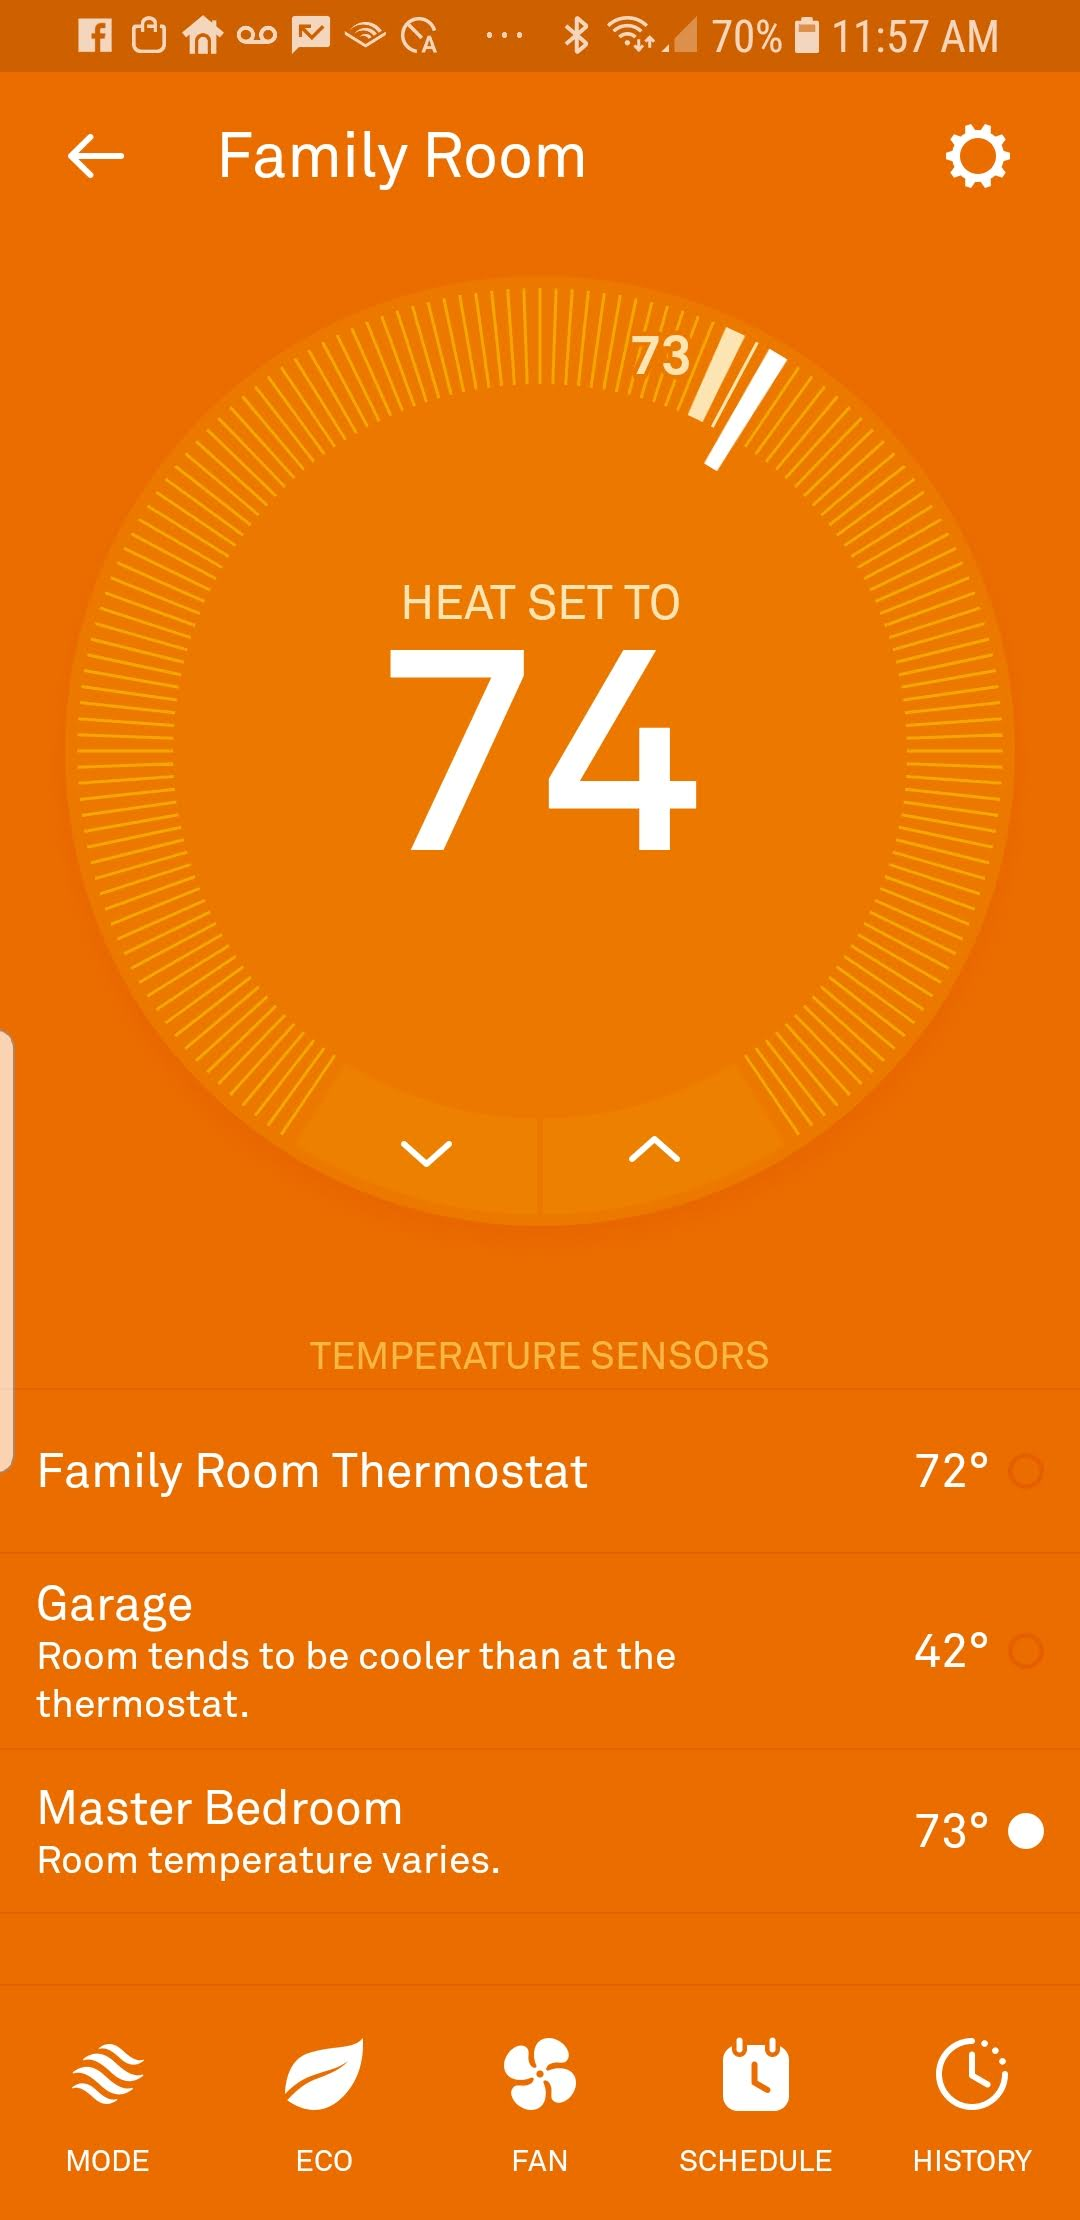 The Nest Room Sensor information shows up underneath the Nest Thermostat information. You can toggle between rooms you would like to control the temperature for.